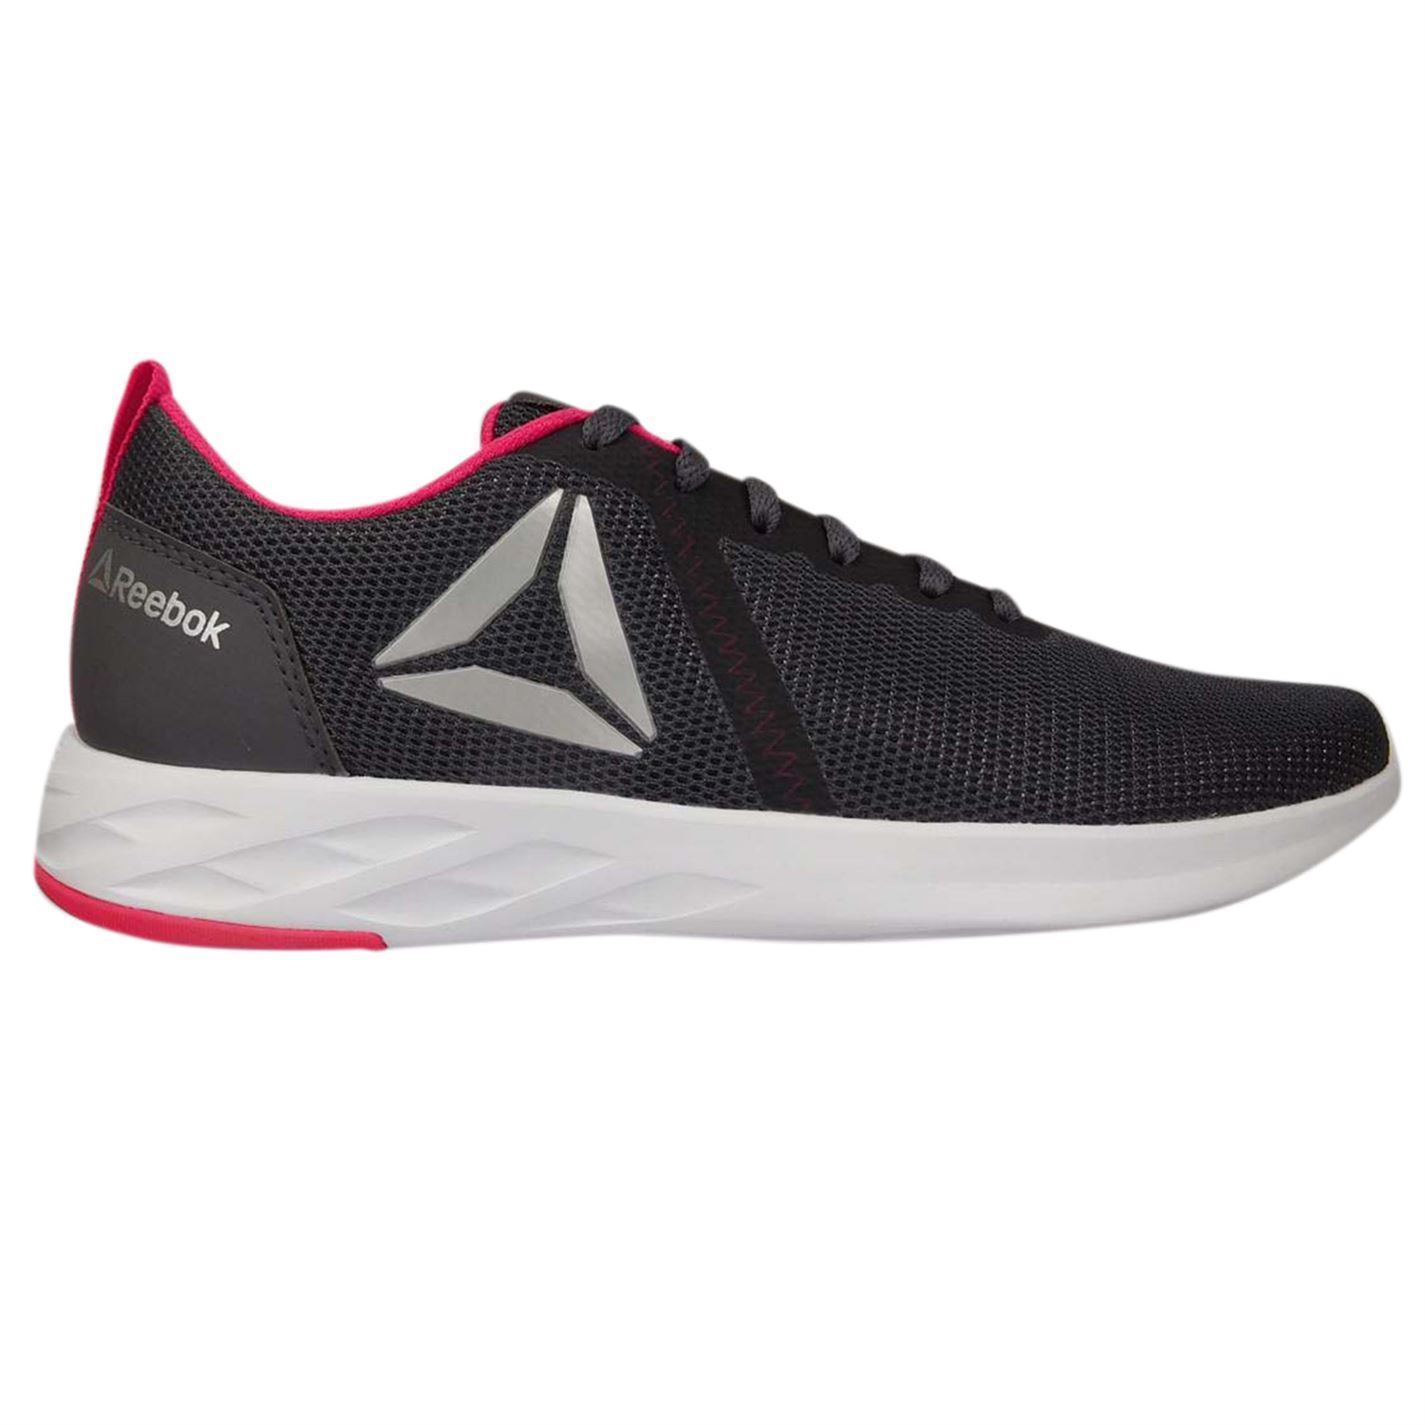 Details about Reebok Astro Ride Essential Training Shoes Womens Fitness Gym Trainers Sneakers